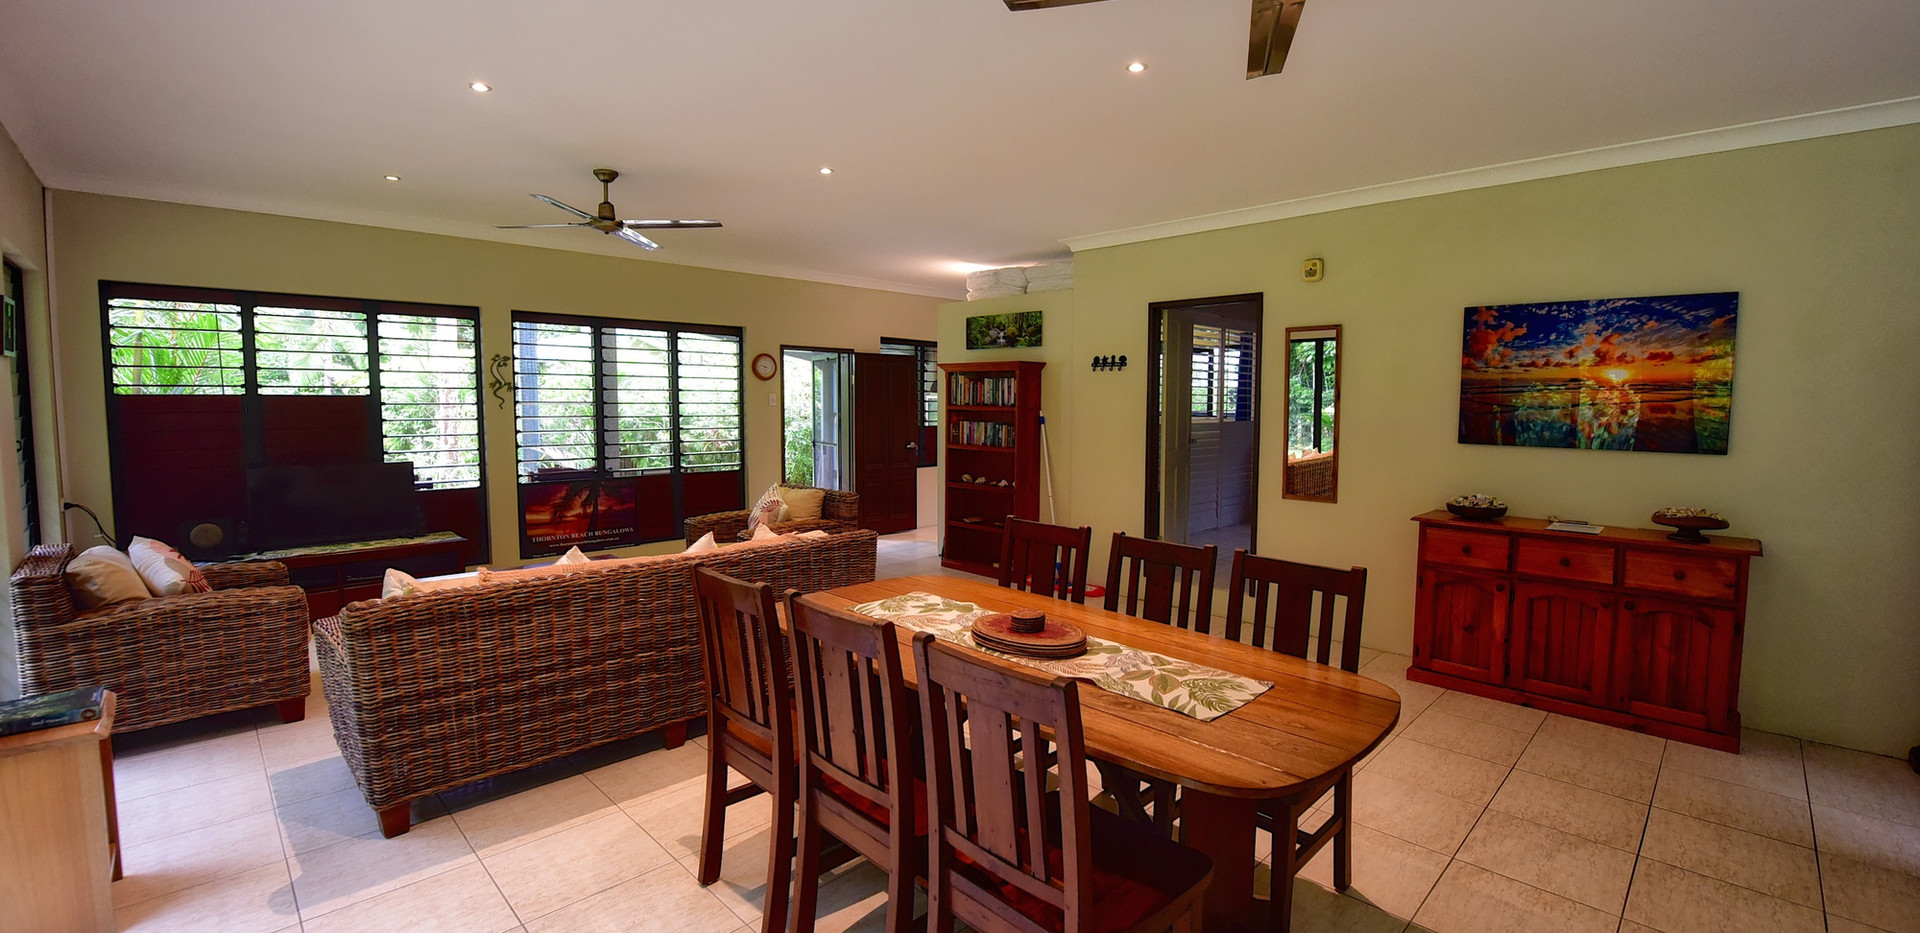 Big Bungalow dinning area